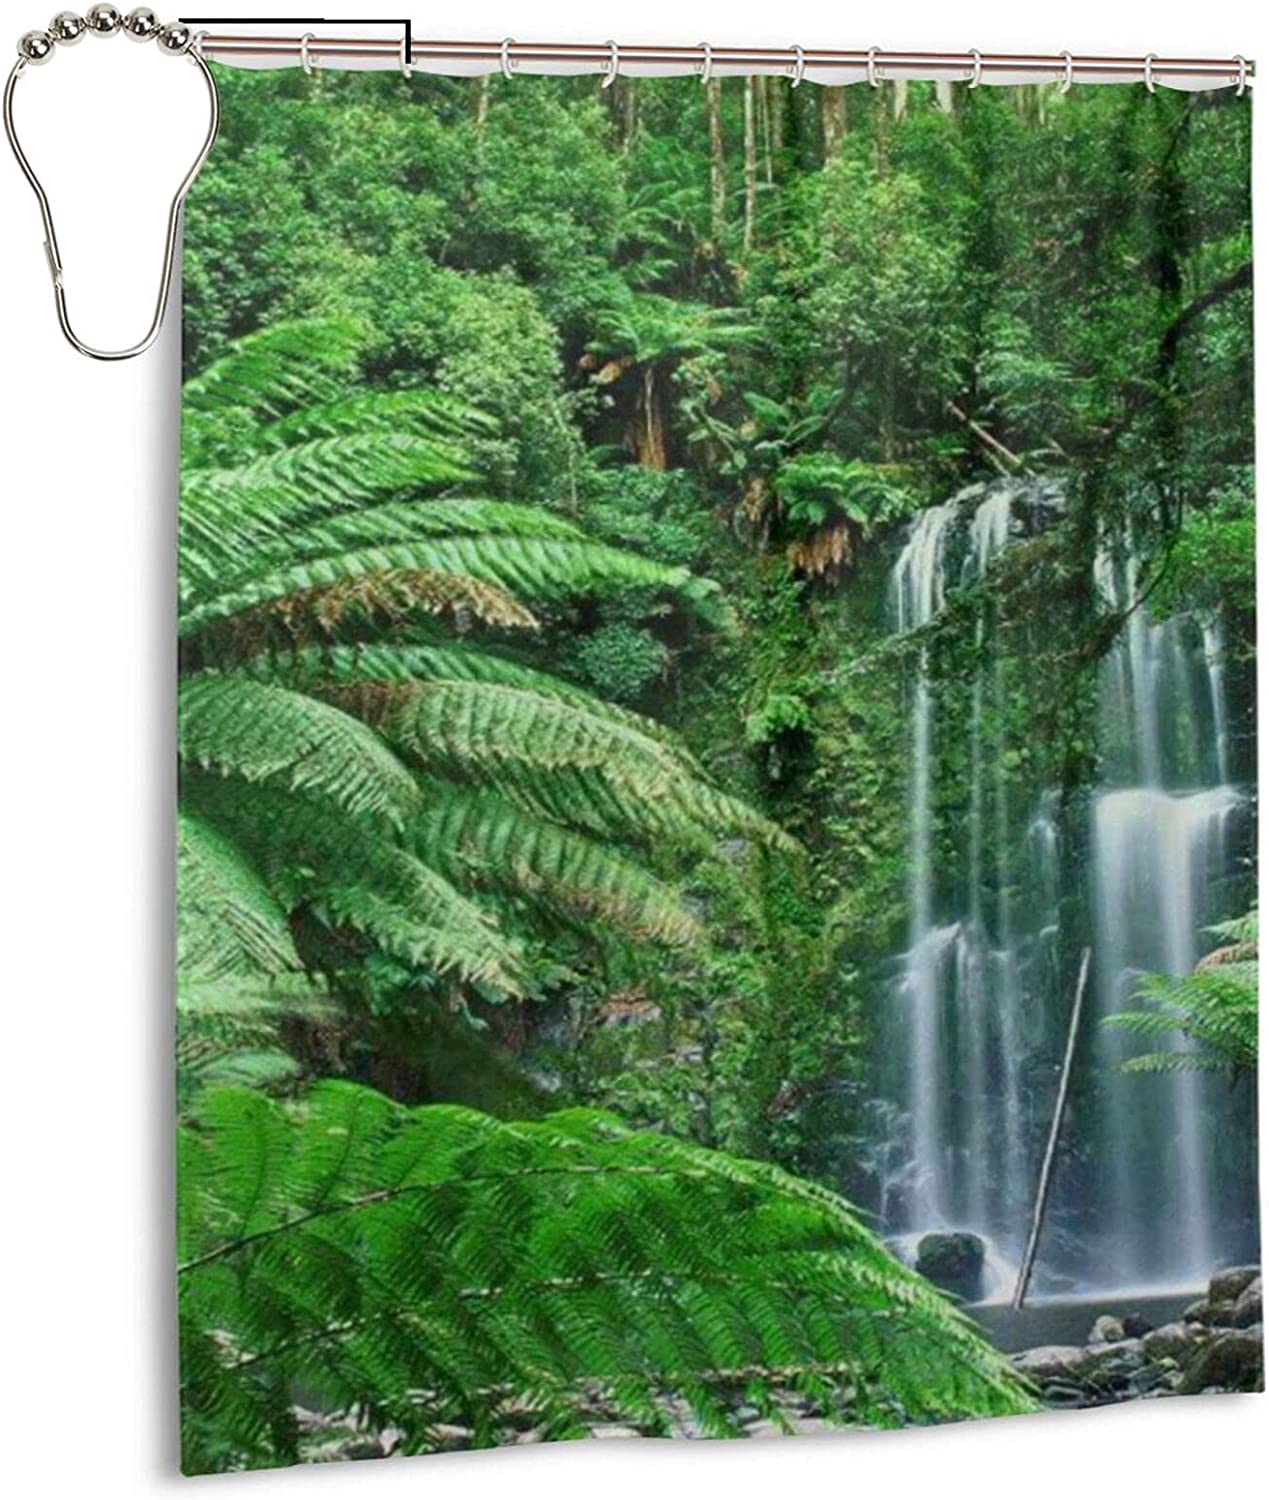 Tropical sold out Forests Bath Shower Waterproof Fabric Curtain In a popularity